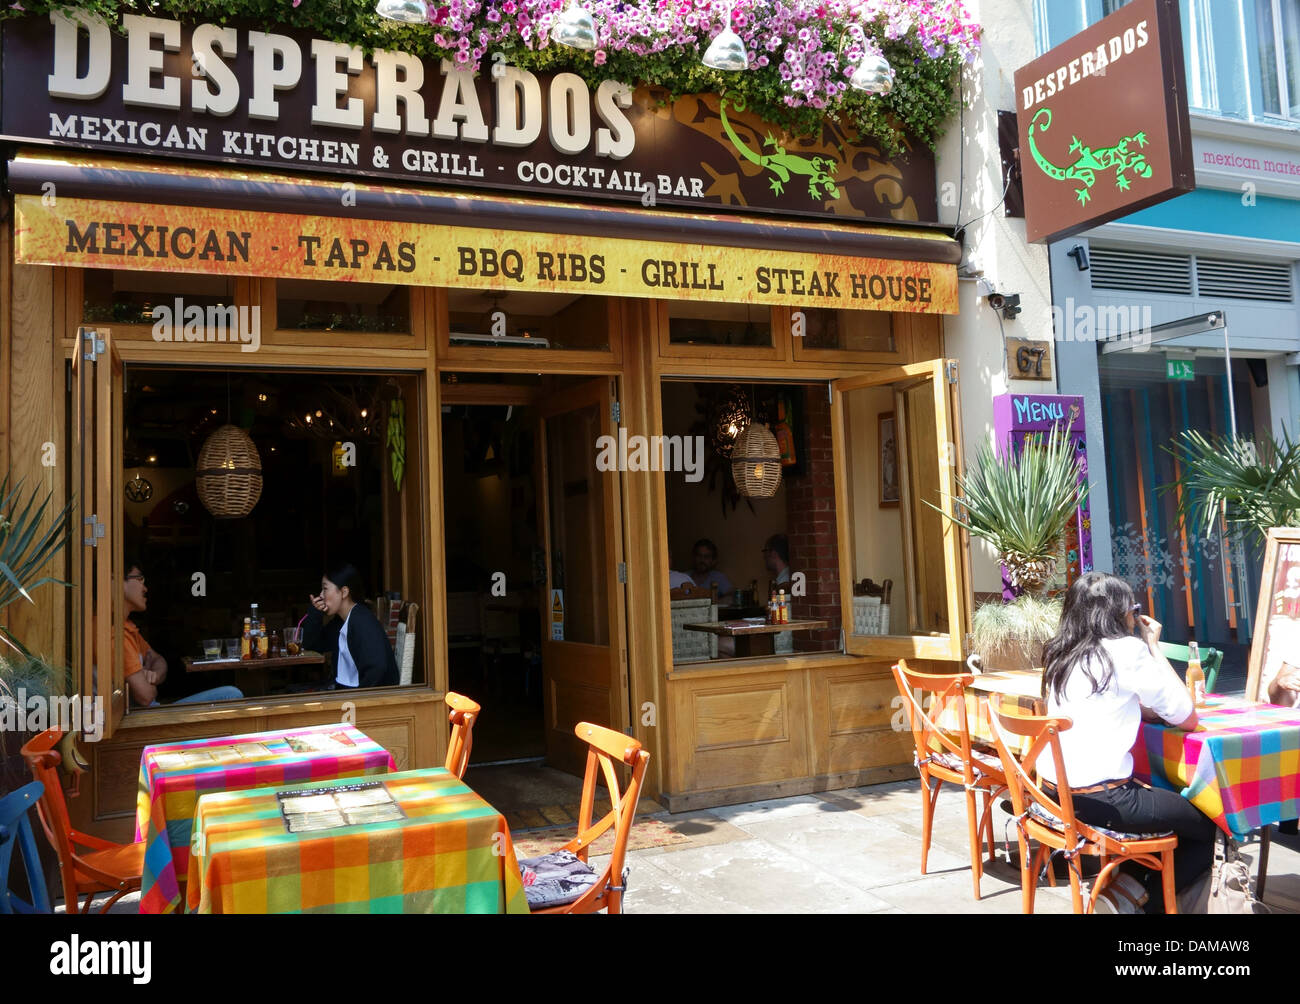 Desperados Mexican Restaurant And Bar Upper Street Islington Stock Photo Alamy